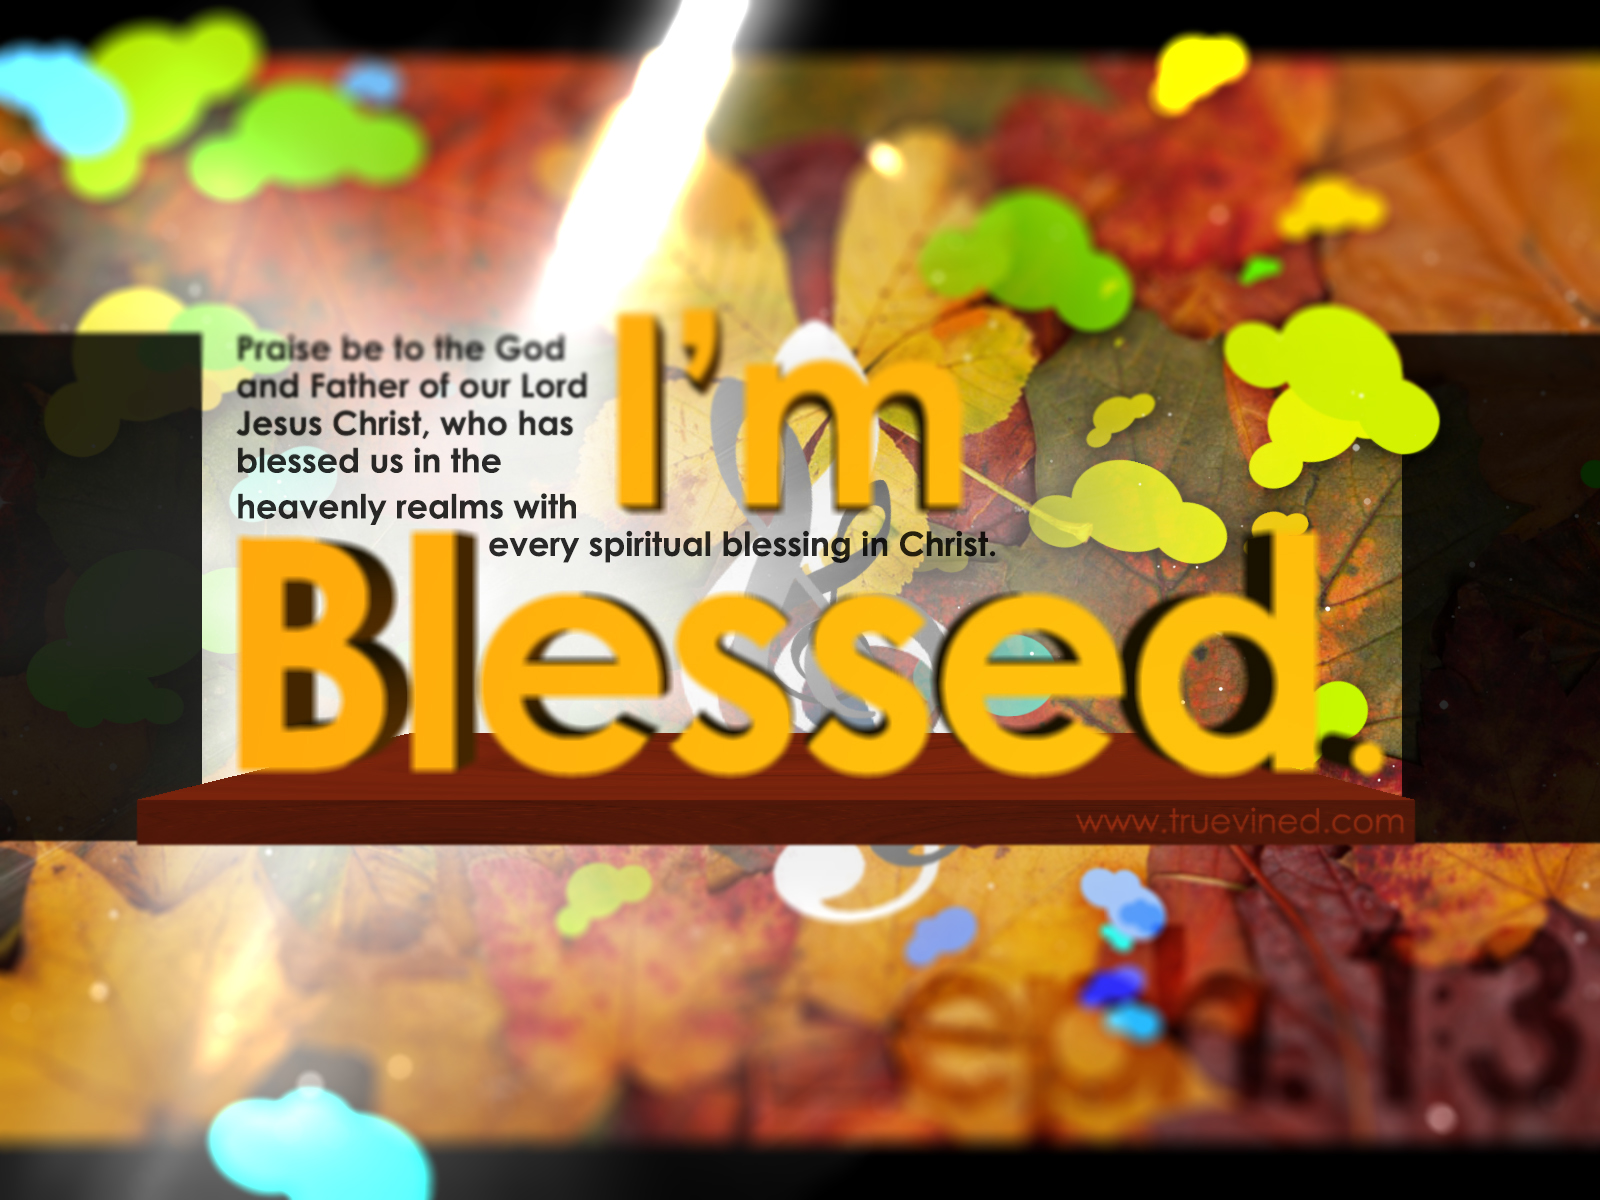 I Am Blessed Wallpaper I'm Blessed - The fres...